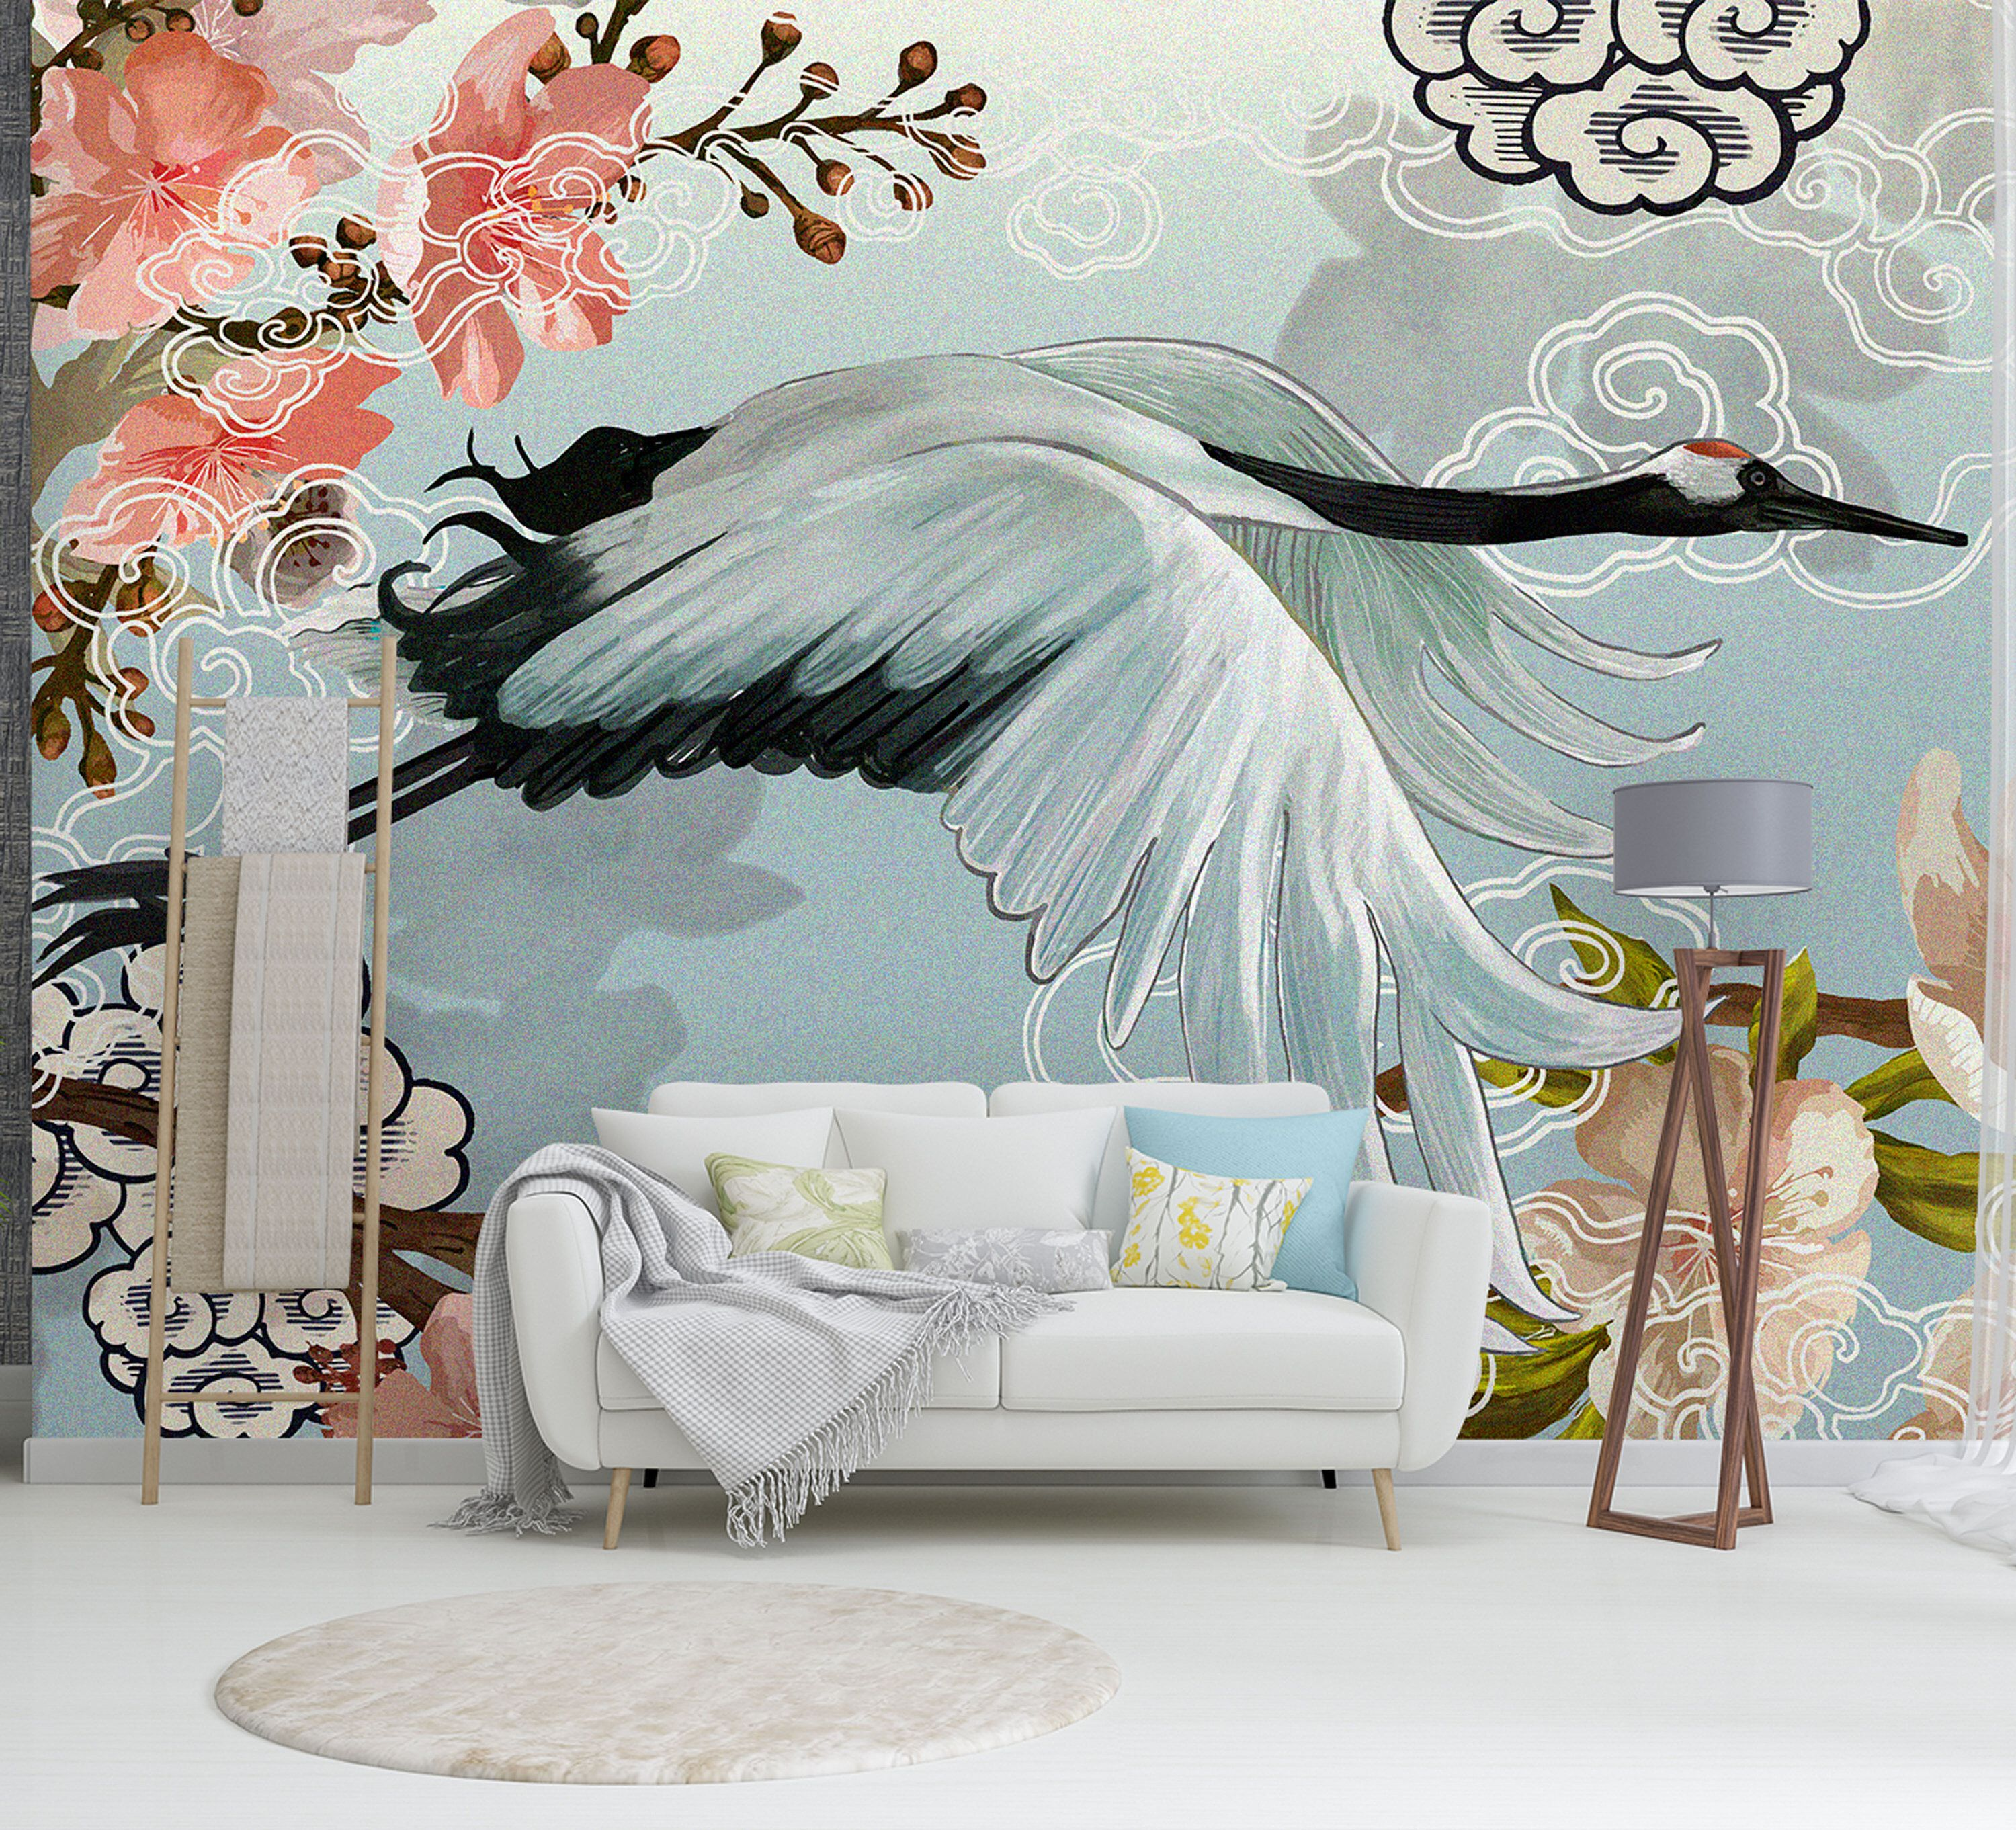 White Japanese Crane Living Bedroom Japanese Mural Wallpaper Removable Self Adhesive And Traditional Bedroom Wallpaper Colours Wallpaper Mural Wallpaper